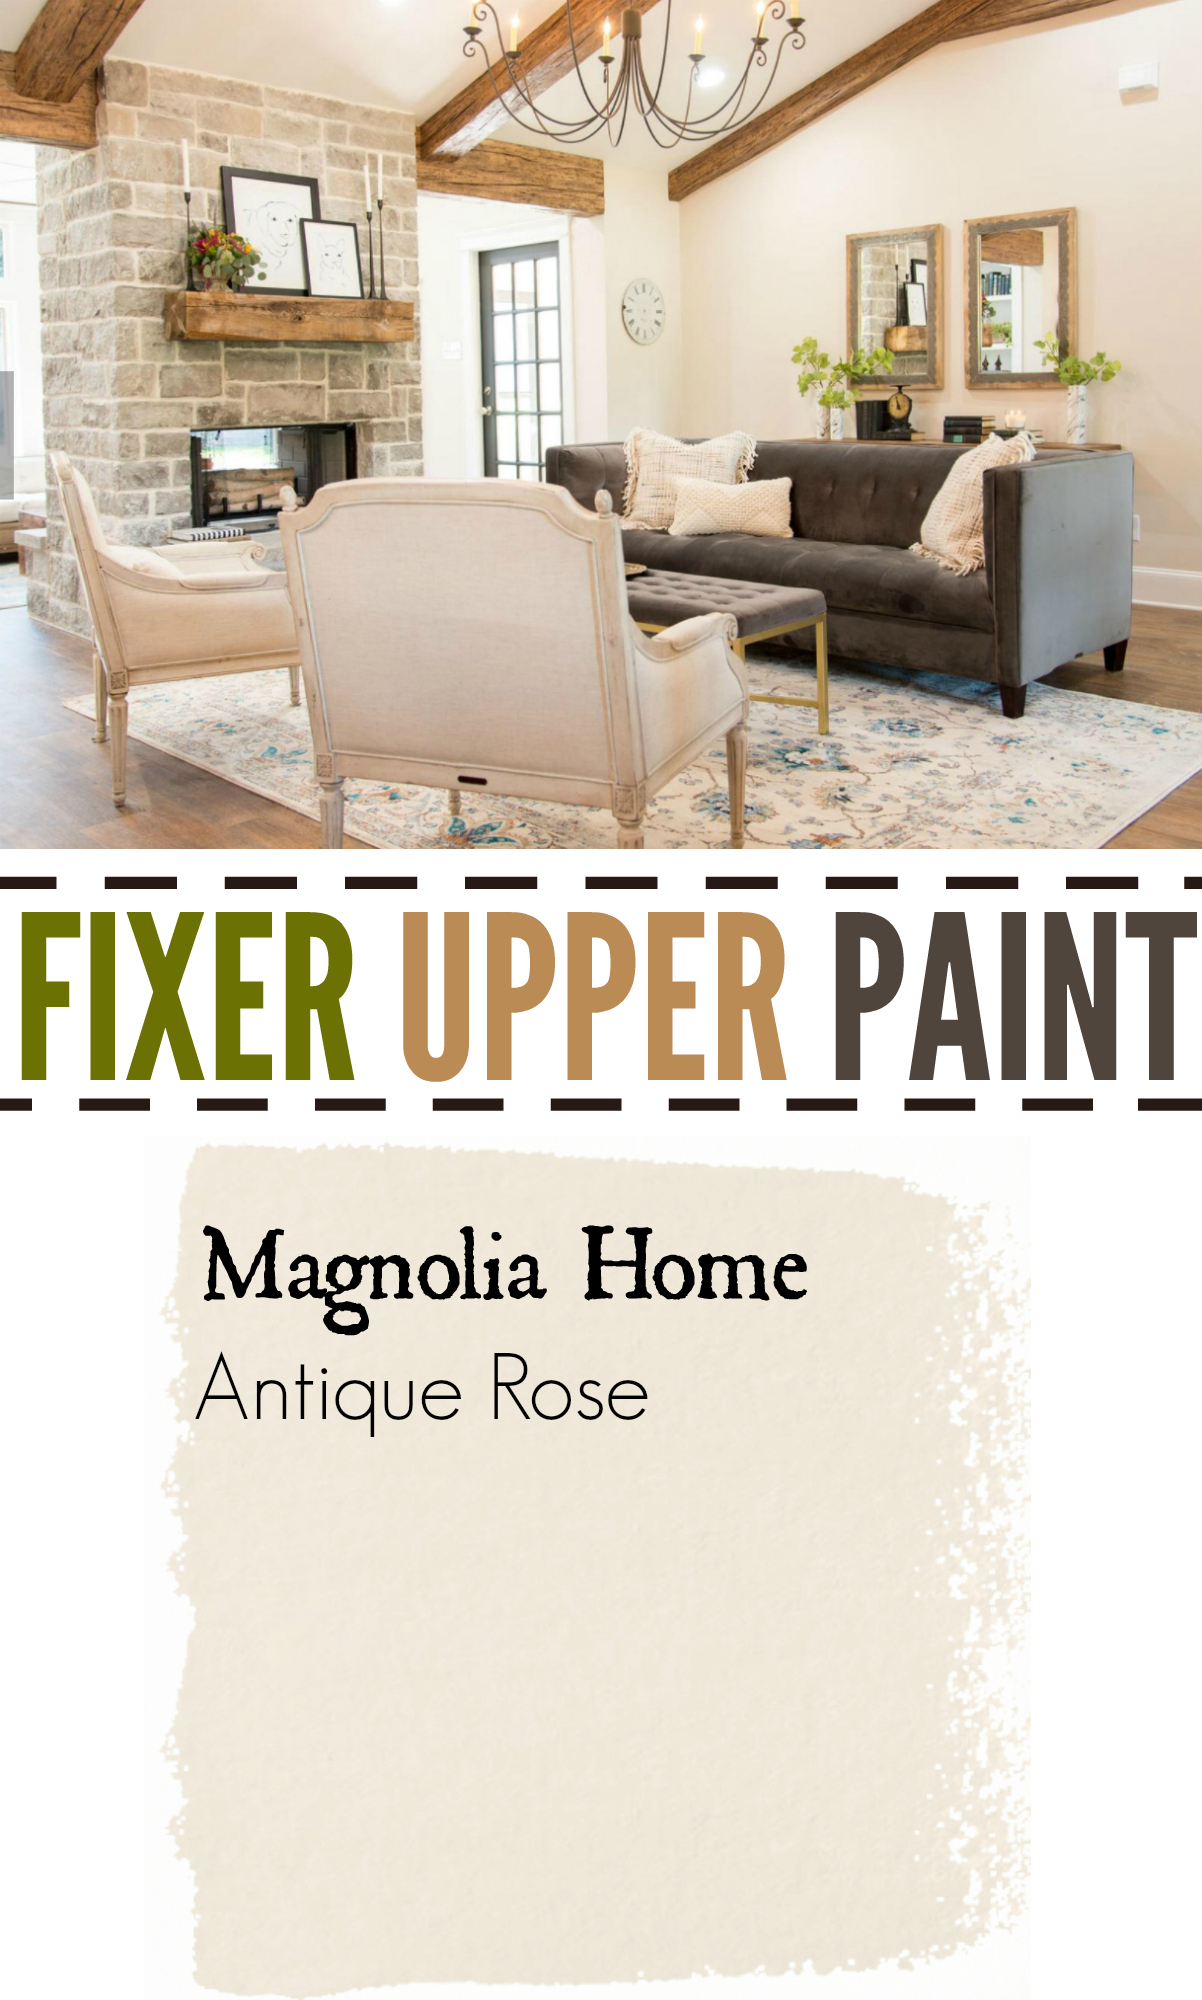 fixer-upper-paint-antique-rose